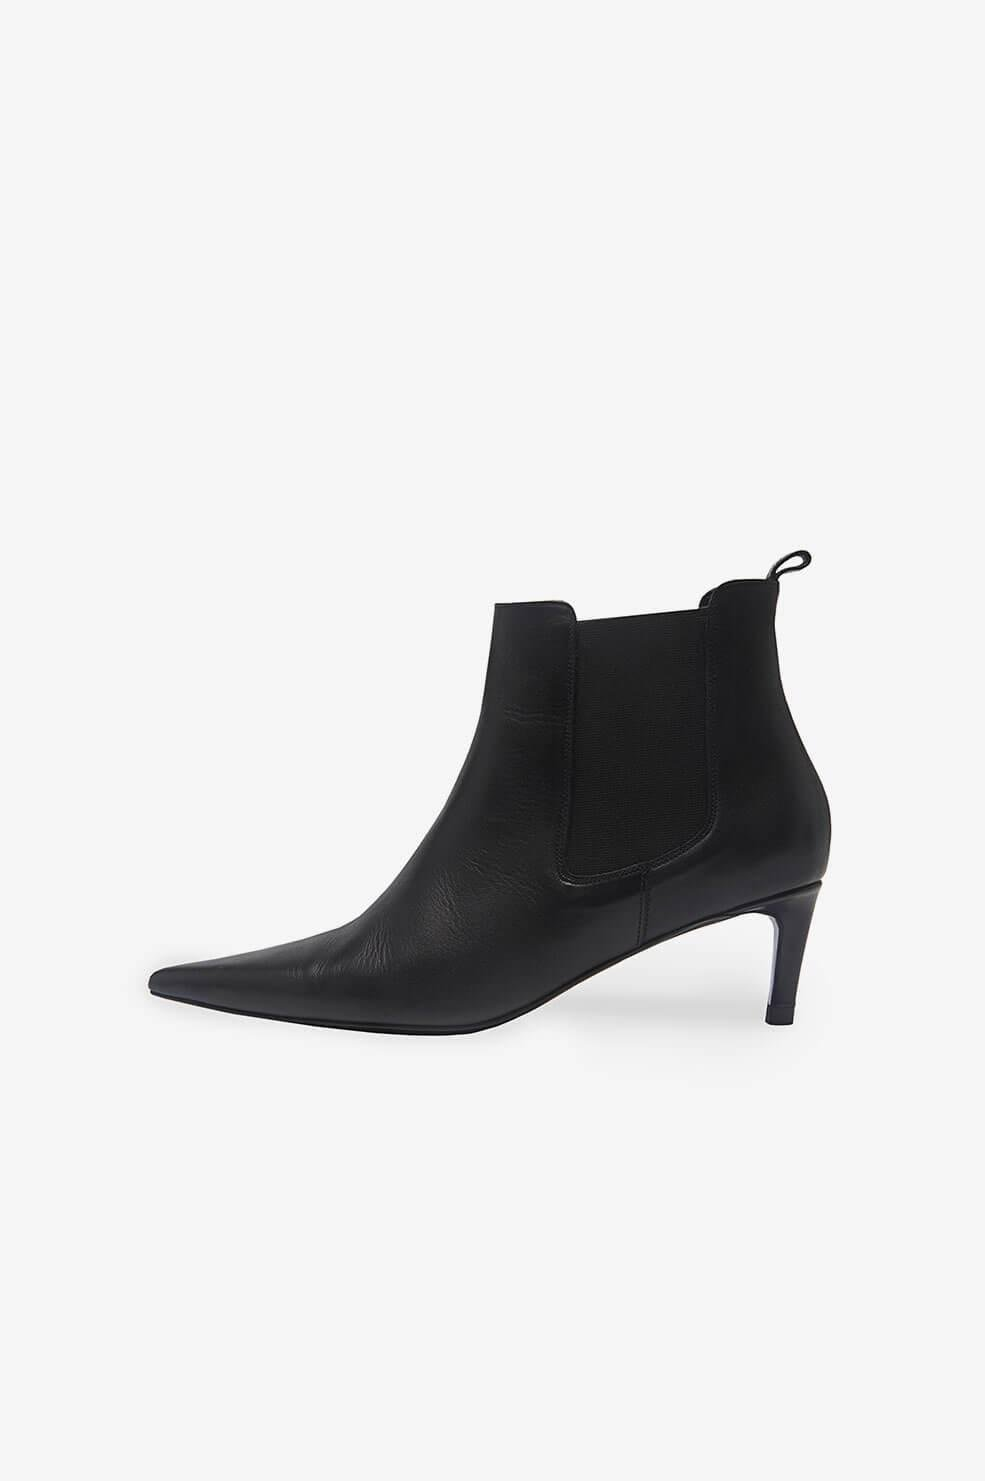 Stevie Boots - Black Leather 2